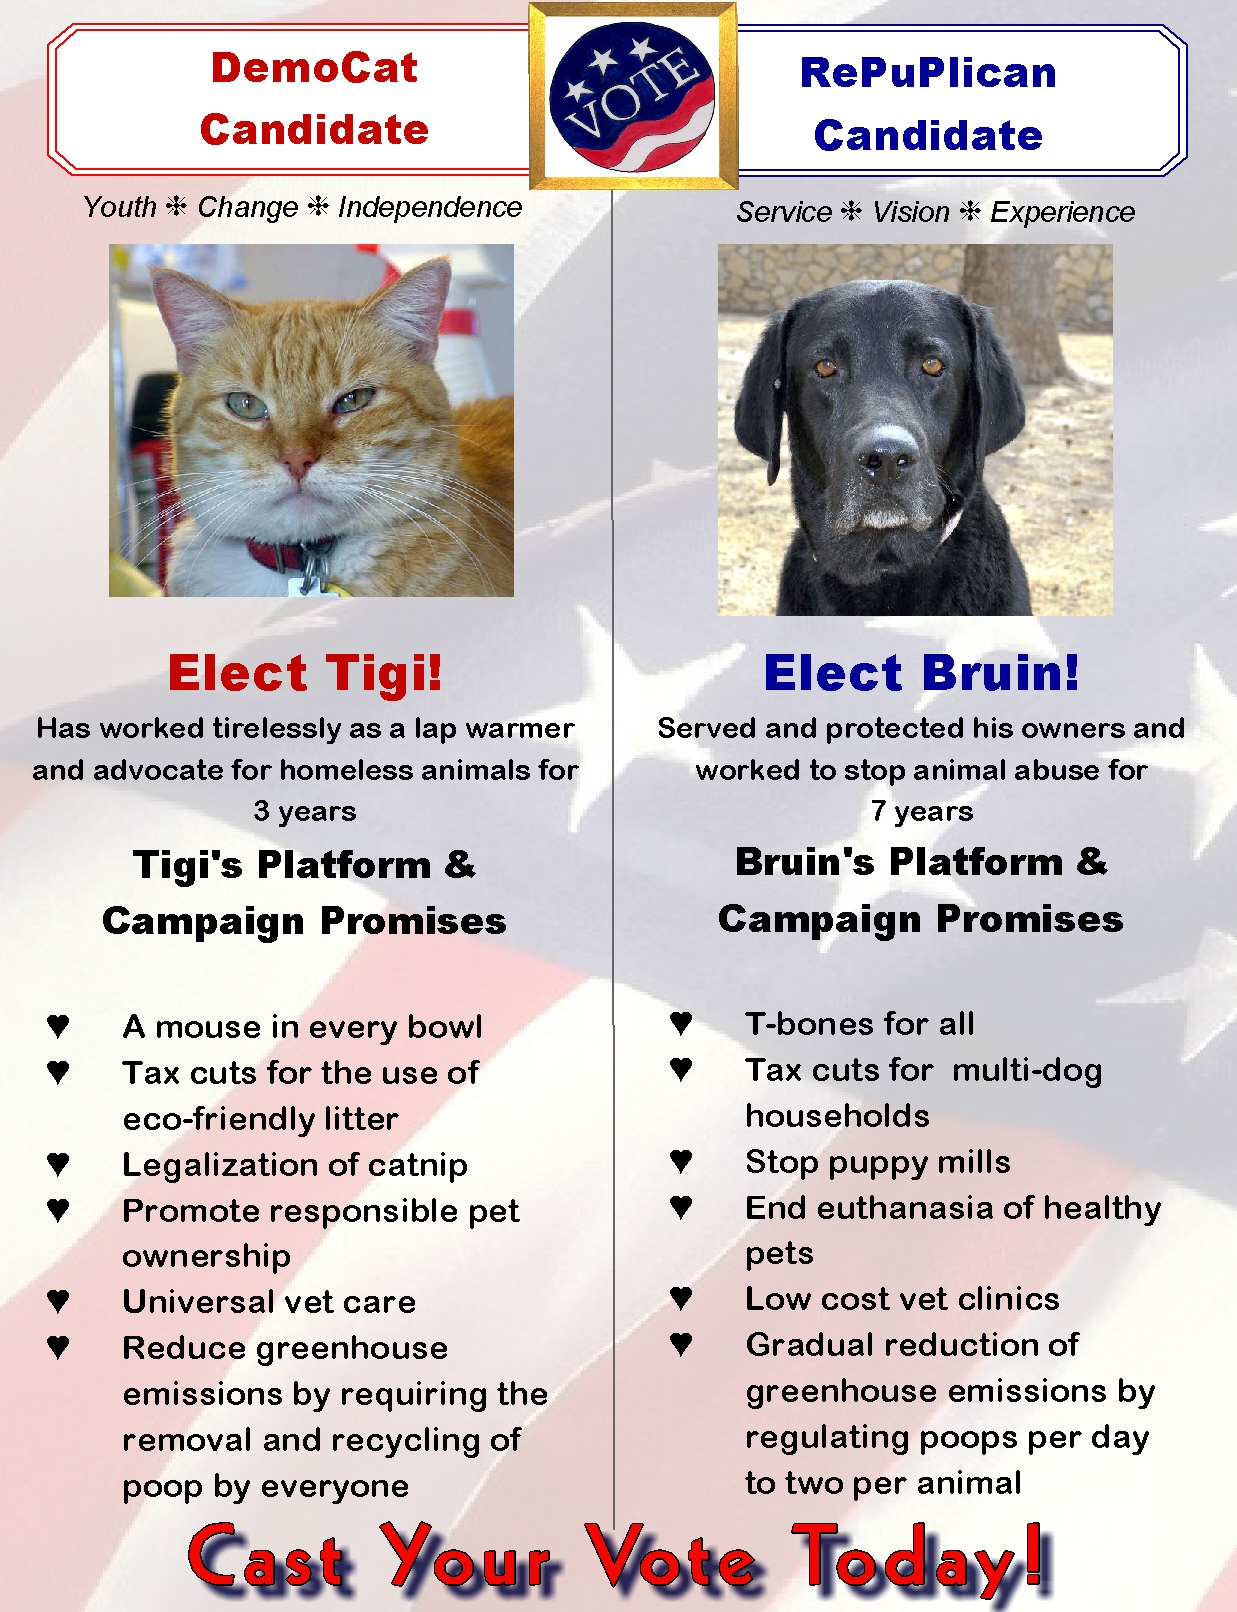 Web Image: Election 2012